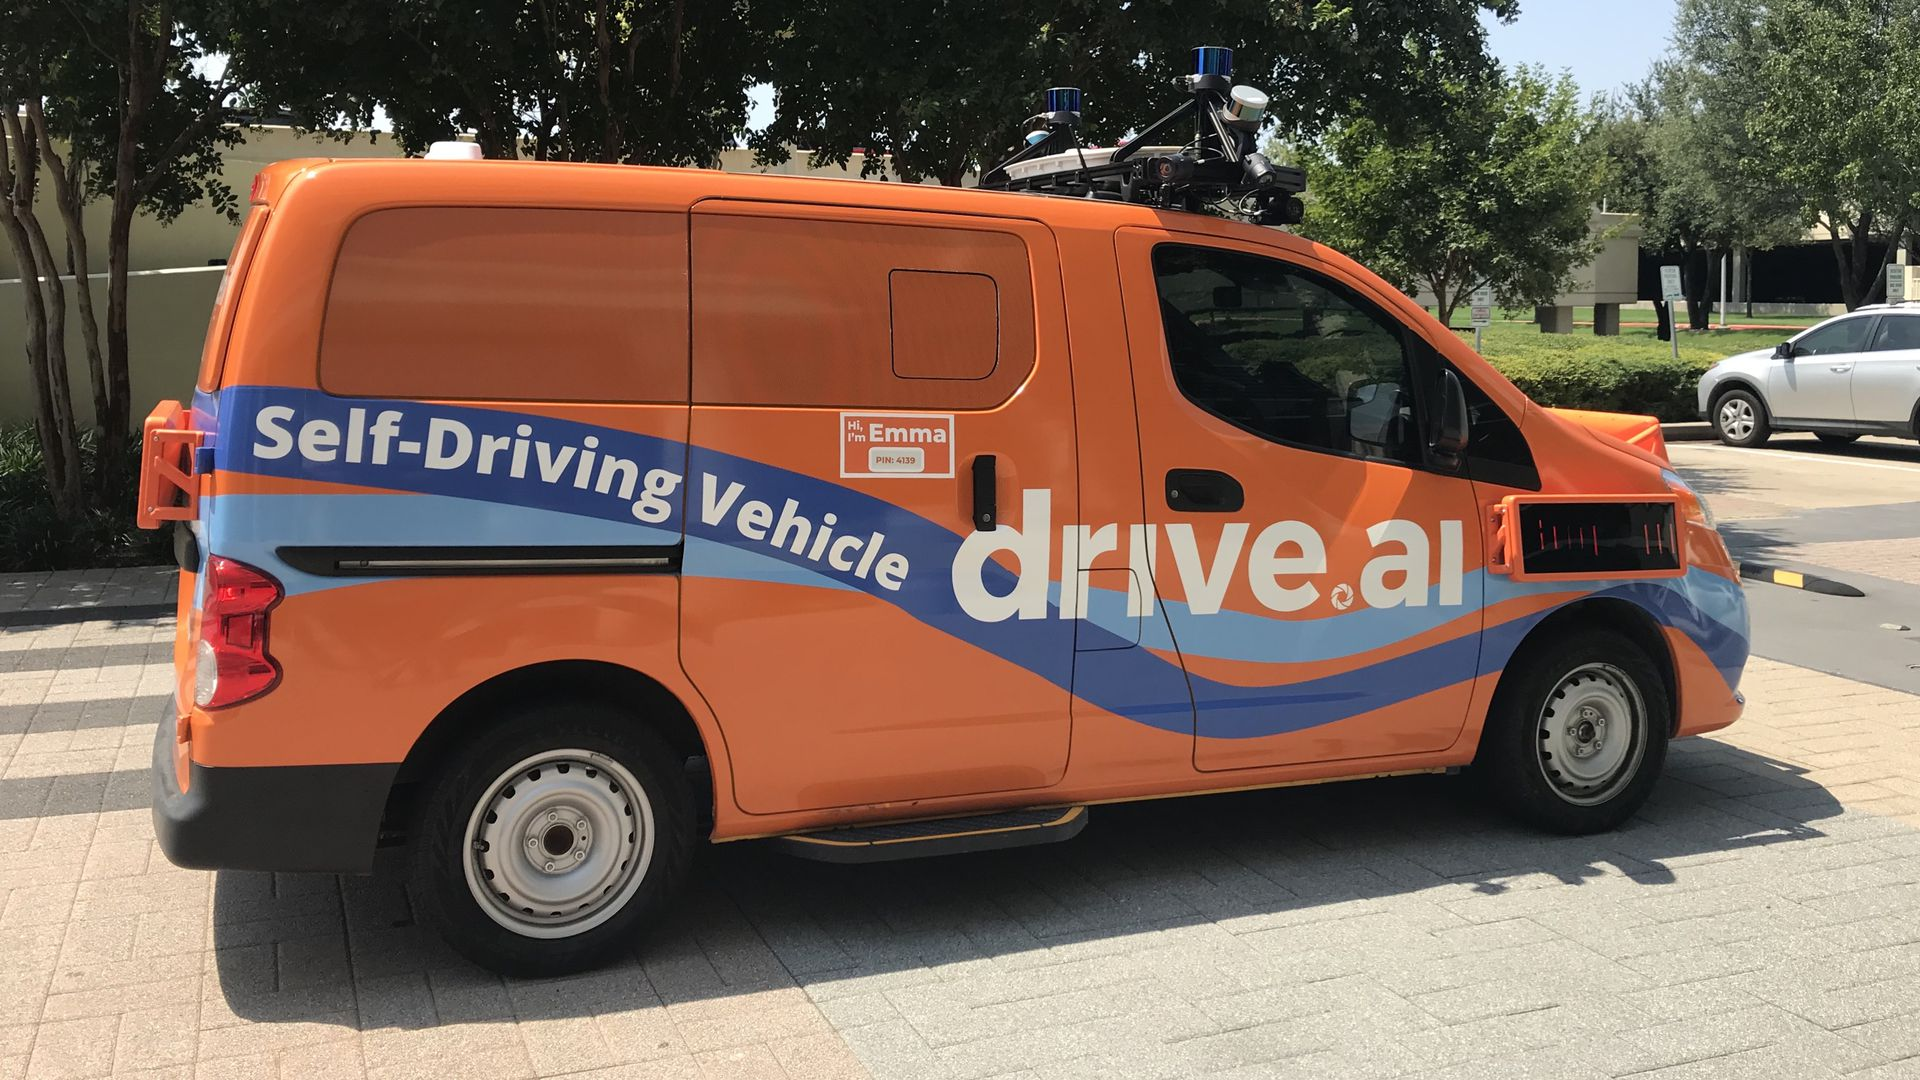 Photo of an orange self-driving van